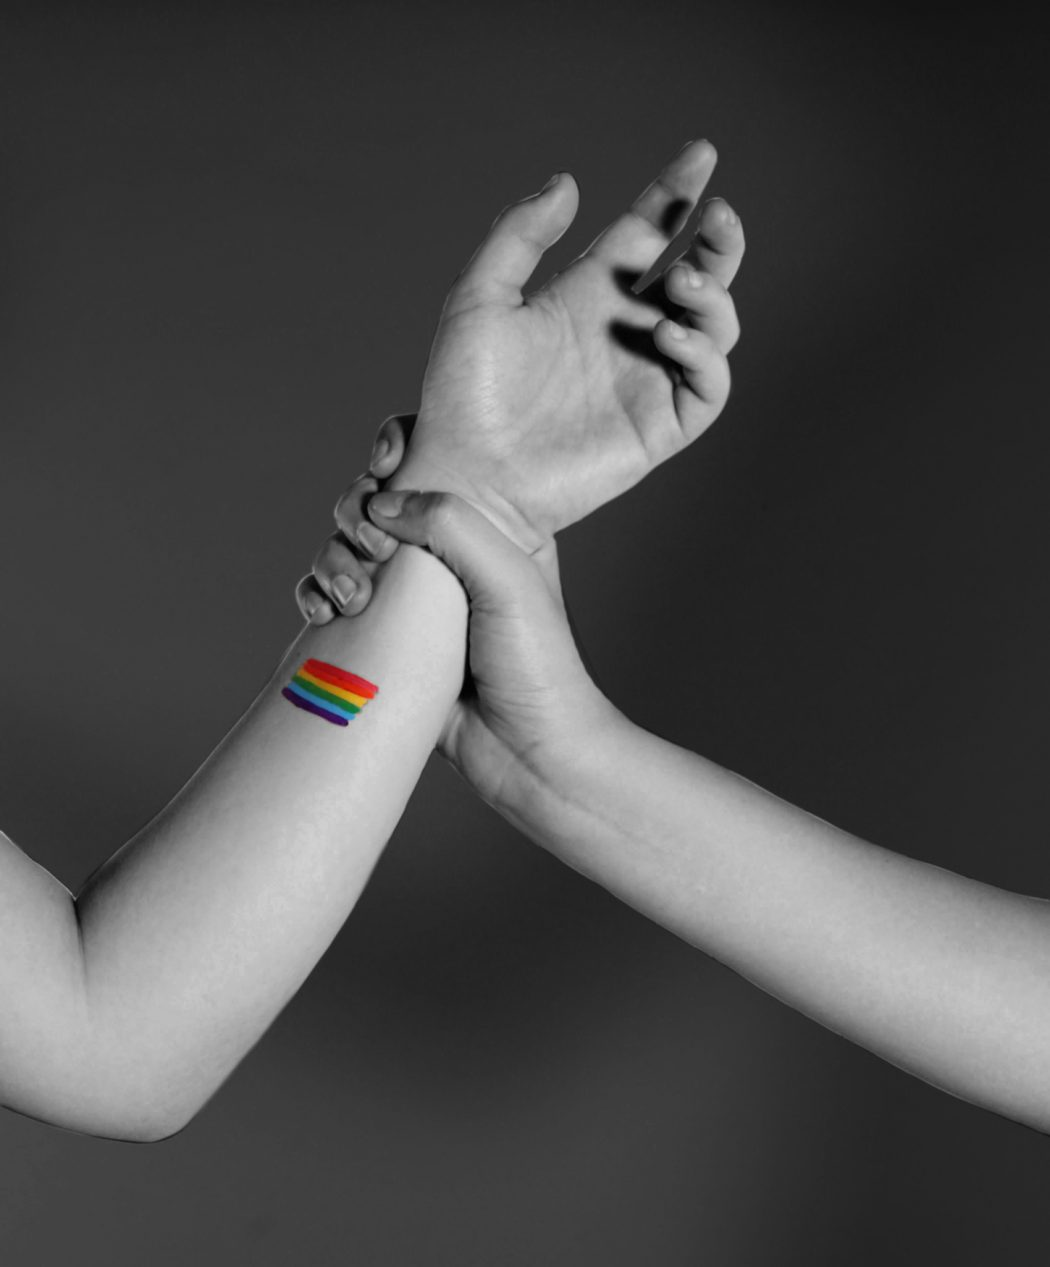 How Discrimination & Human Sex Trafficking Affect the LGBTQ+ Community